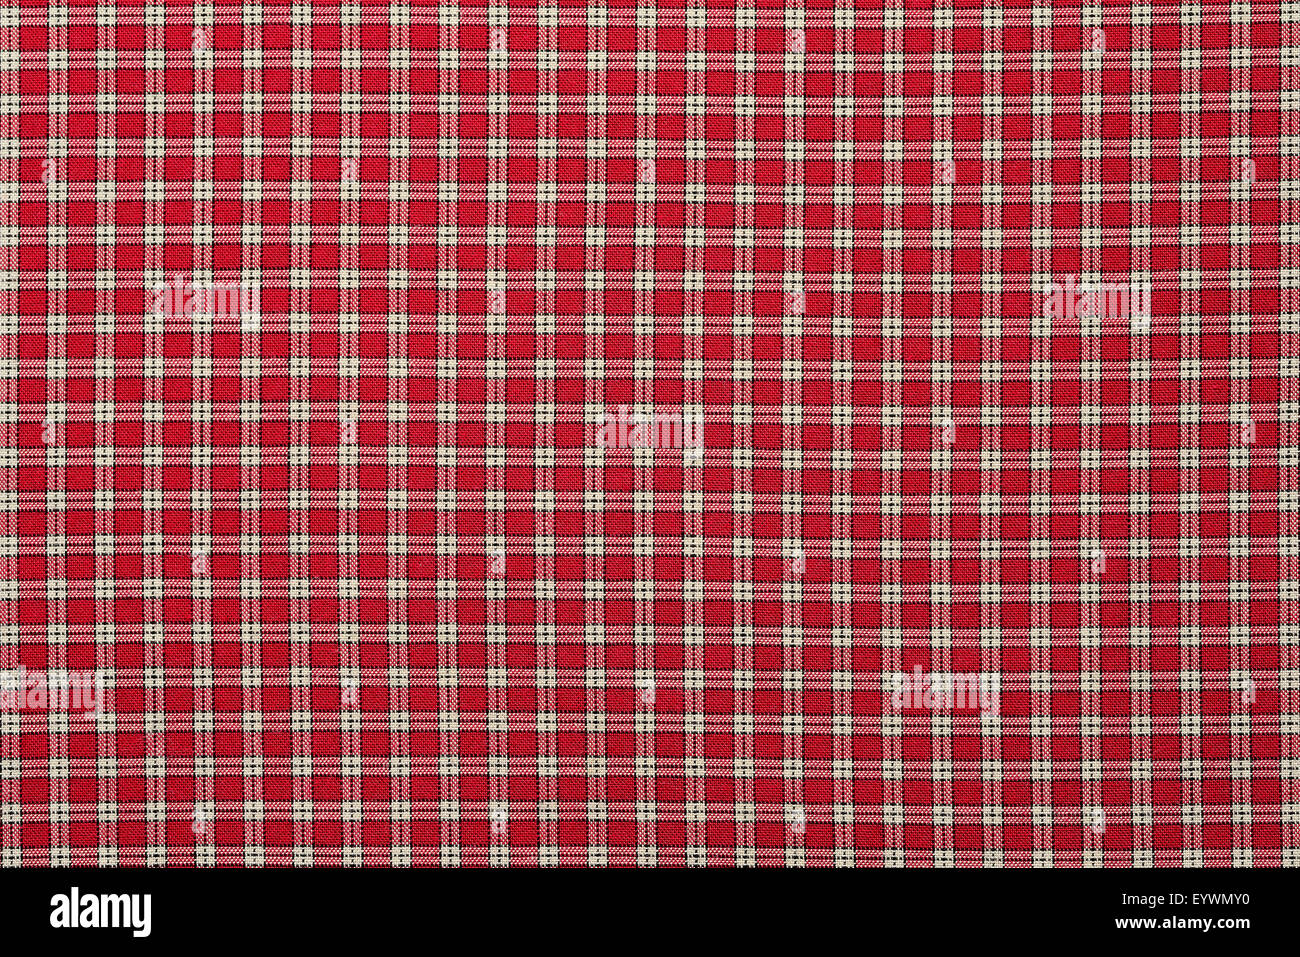 Red Plaid Cloth.   Stock Image